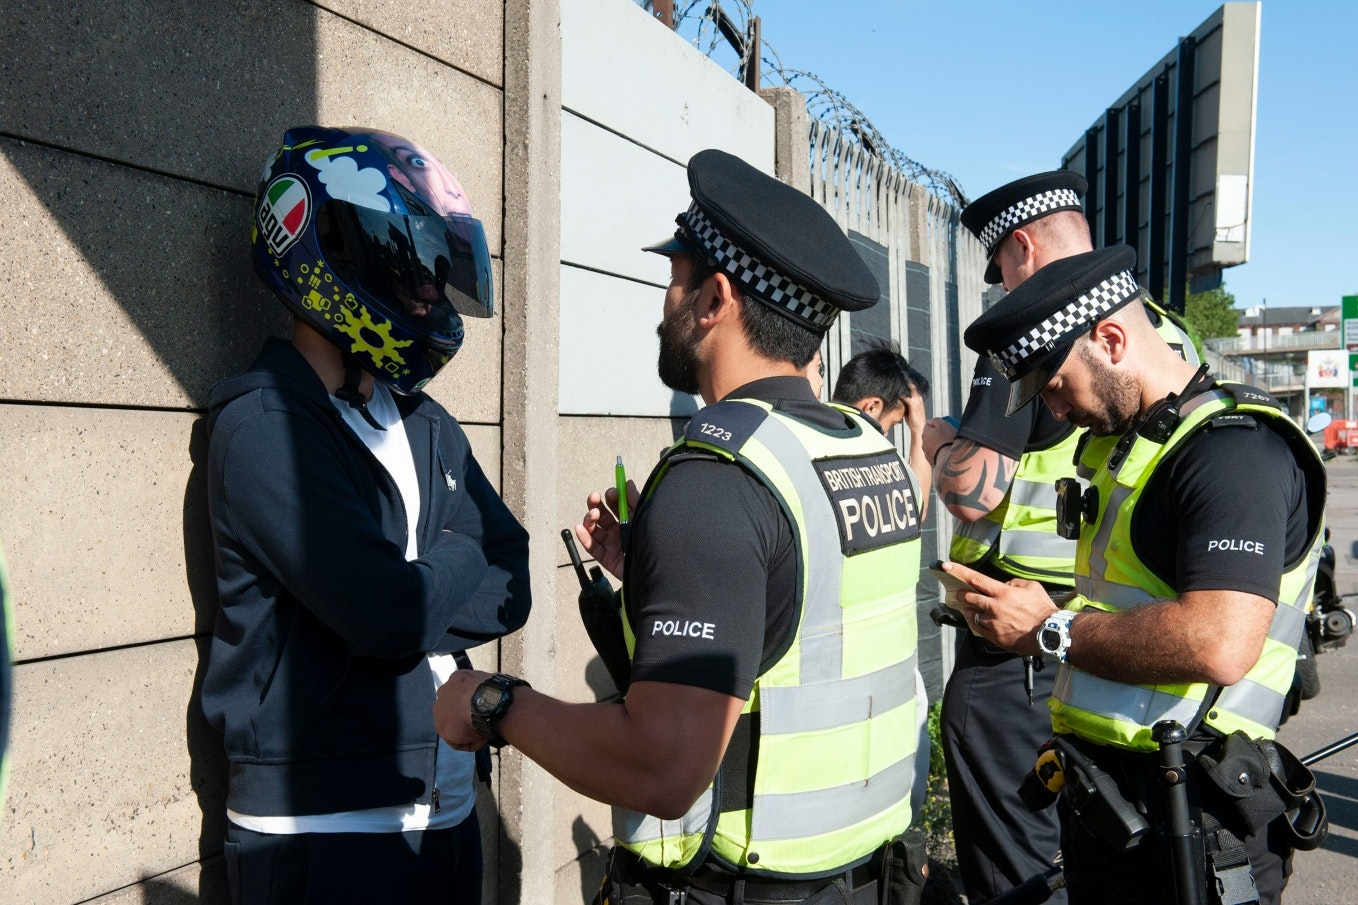 Ending Racial Bias In Police Stop And Search